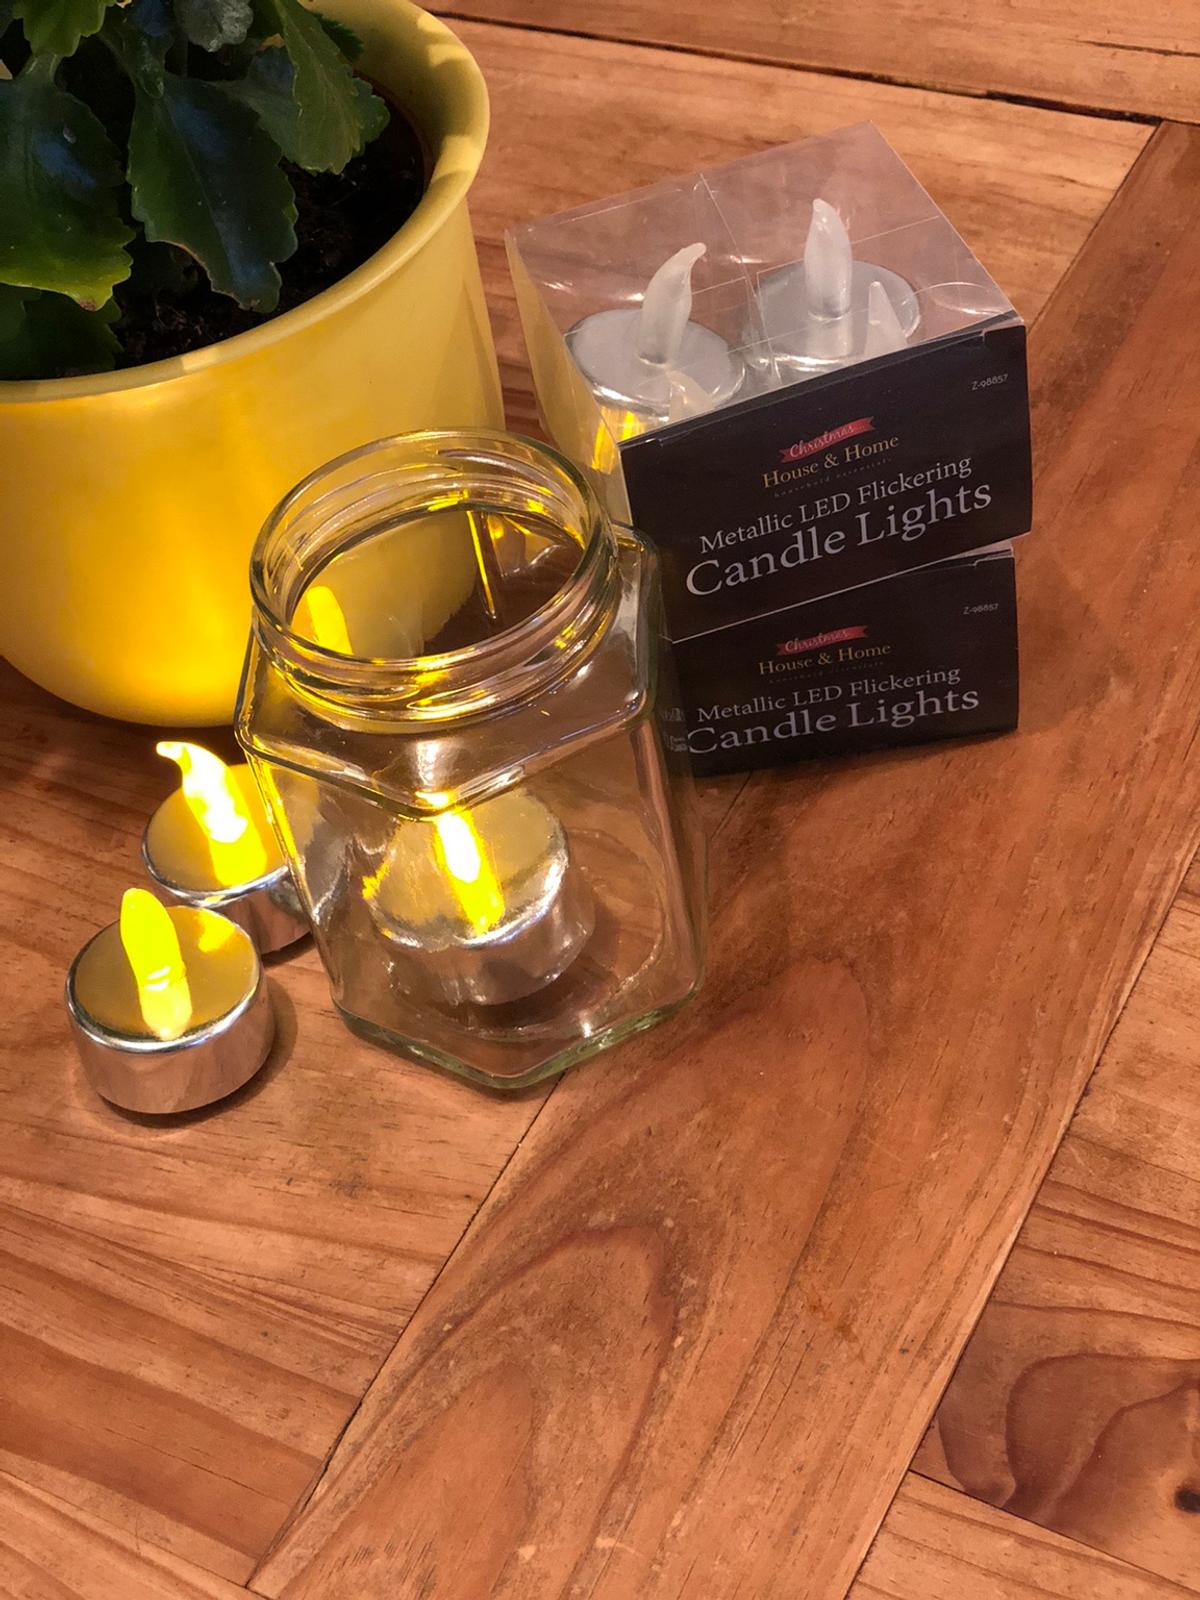 39 LED tea lights - battery's included brought for a garden party but never used. Perfect to put in jam jars for a gathering or to use how you wish. Clean, smoke & pet free home. Collection only - no refunds.